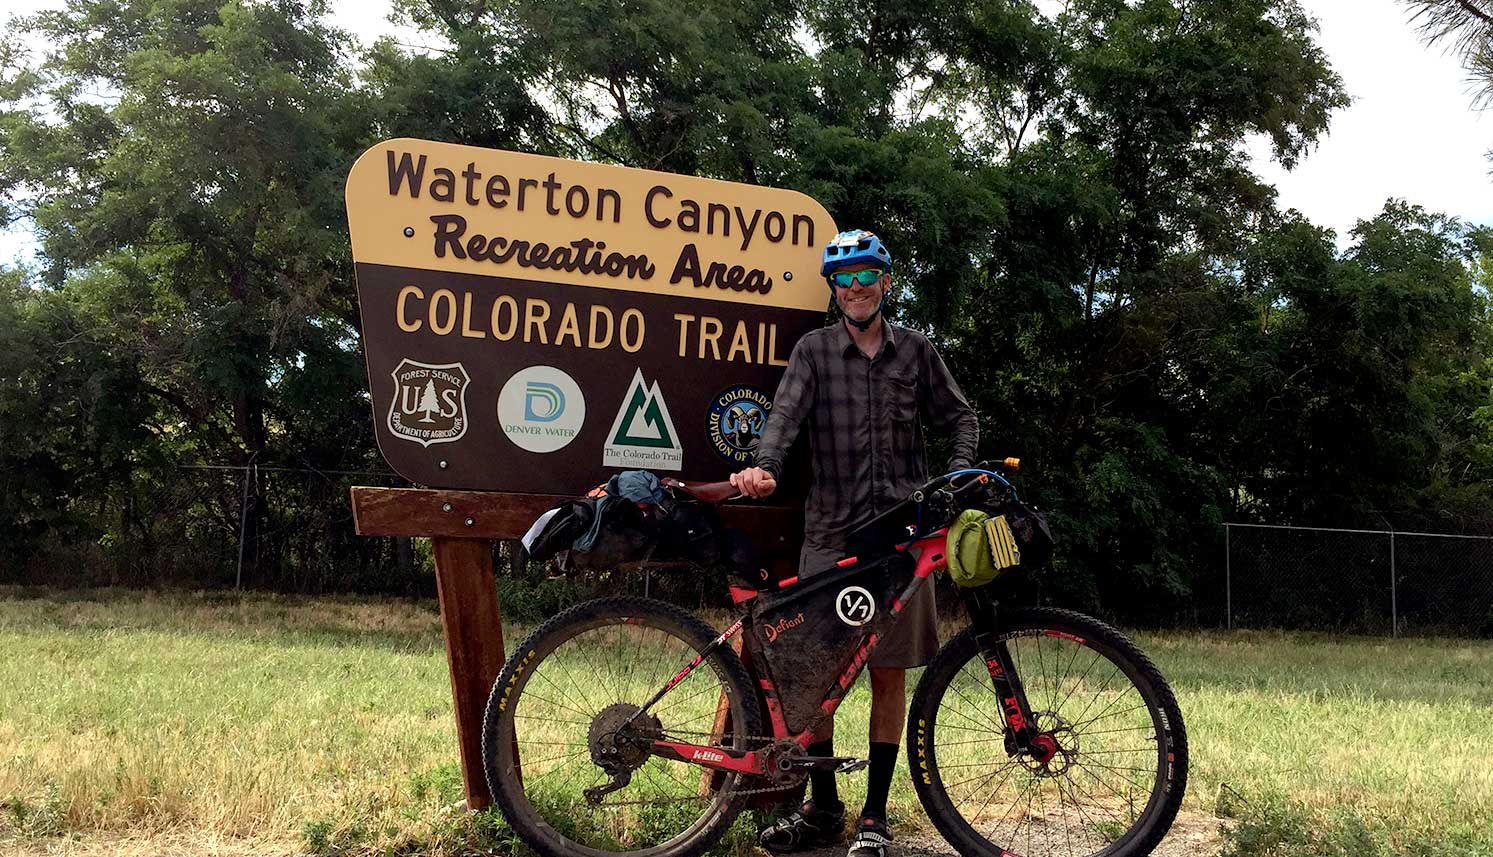 COLORADO TRAIL GUIDE - BIKEPACKING – One of Seven Project